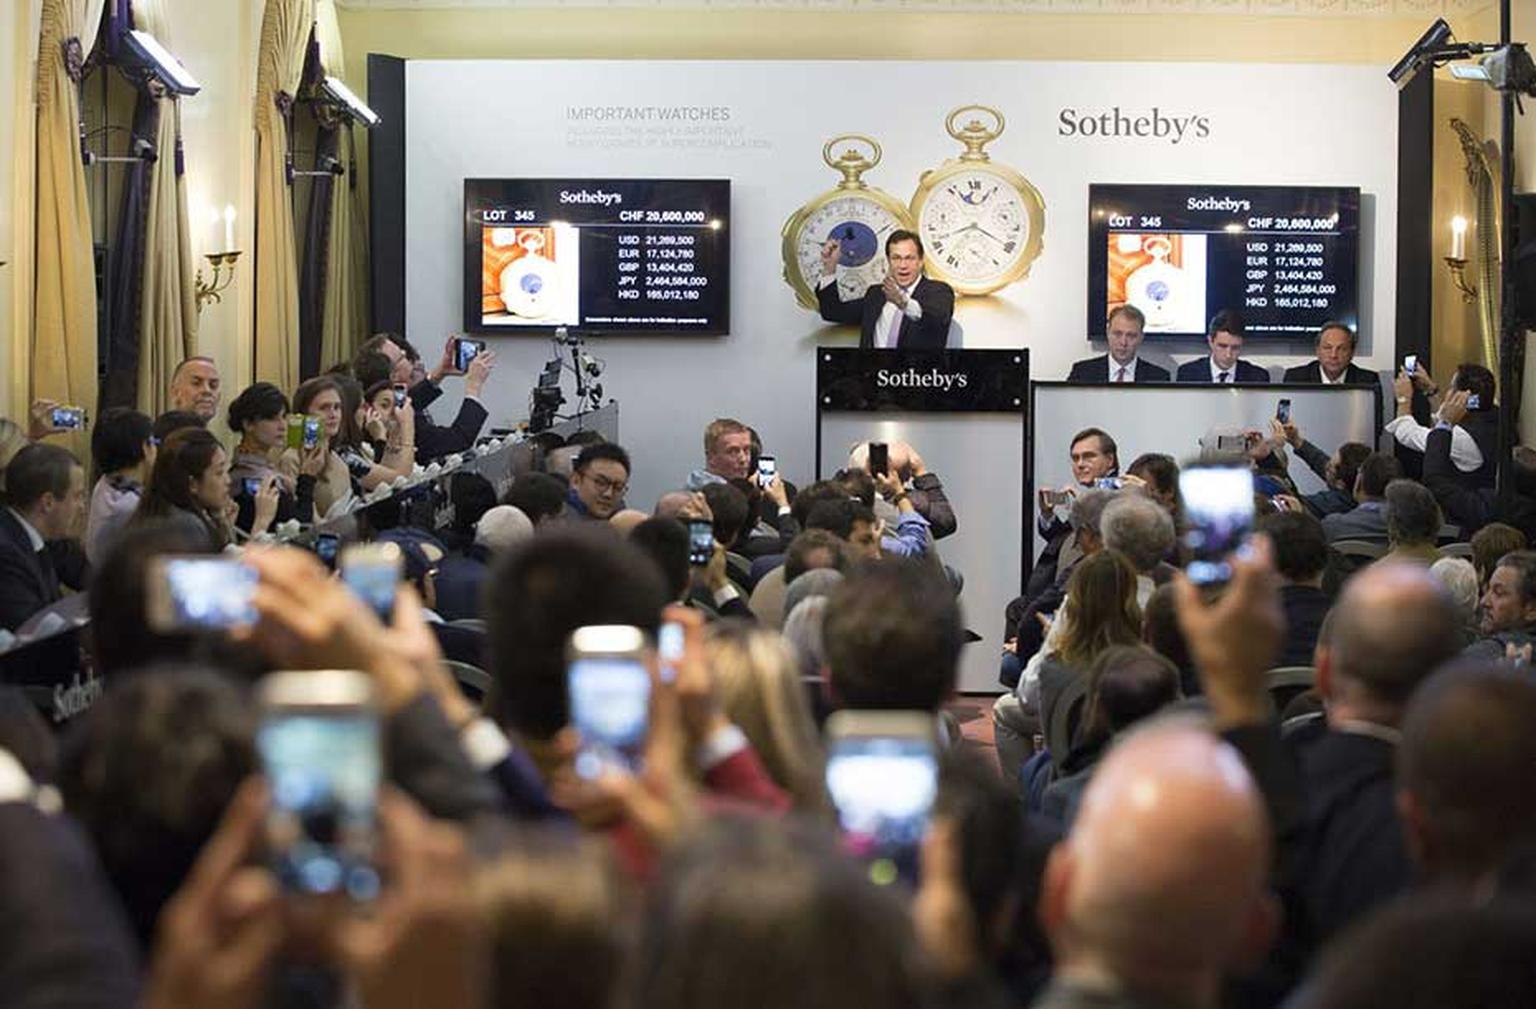 The room at Sotheby's Geneva auction house erupted into wild cheering and applause as auctioneer and consultant Aurel Bacs, who spent most of the sale consulting somebody by phone, secured the Graves Supercomplication pocket watch for $24 million, making